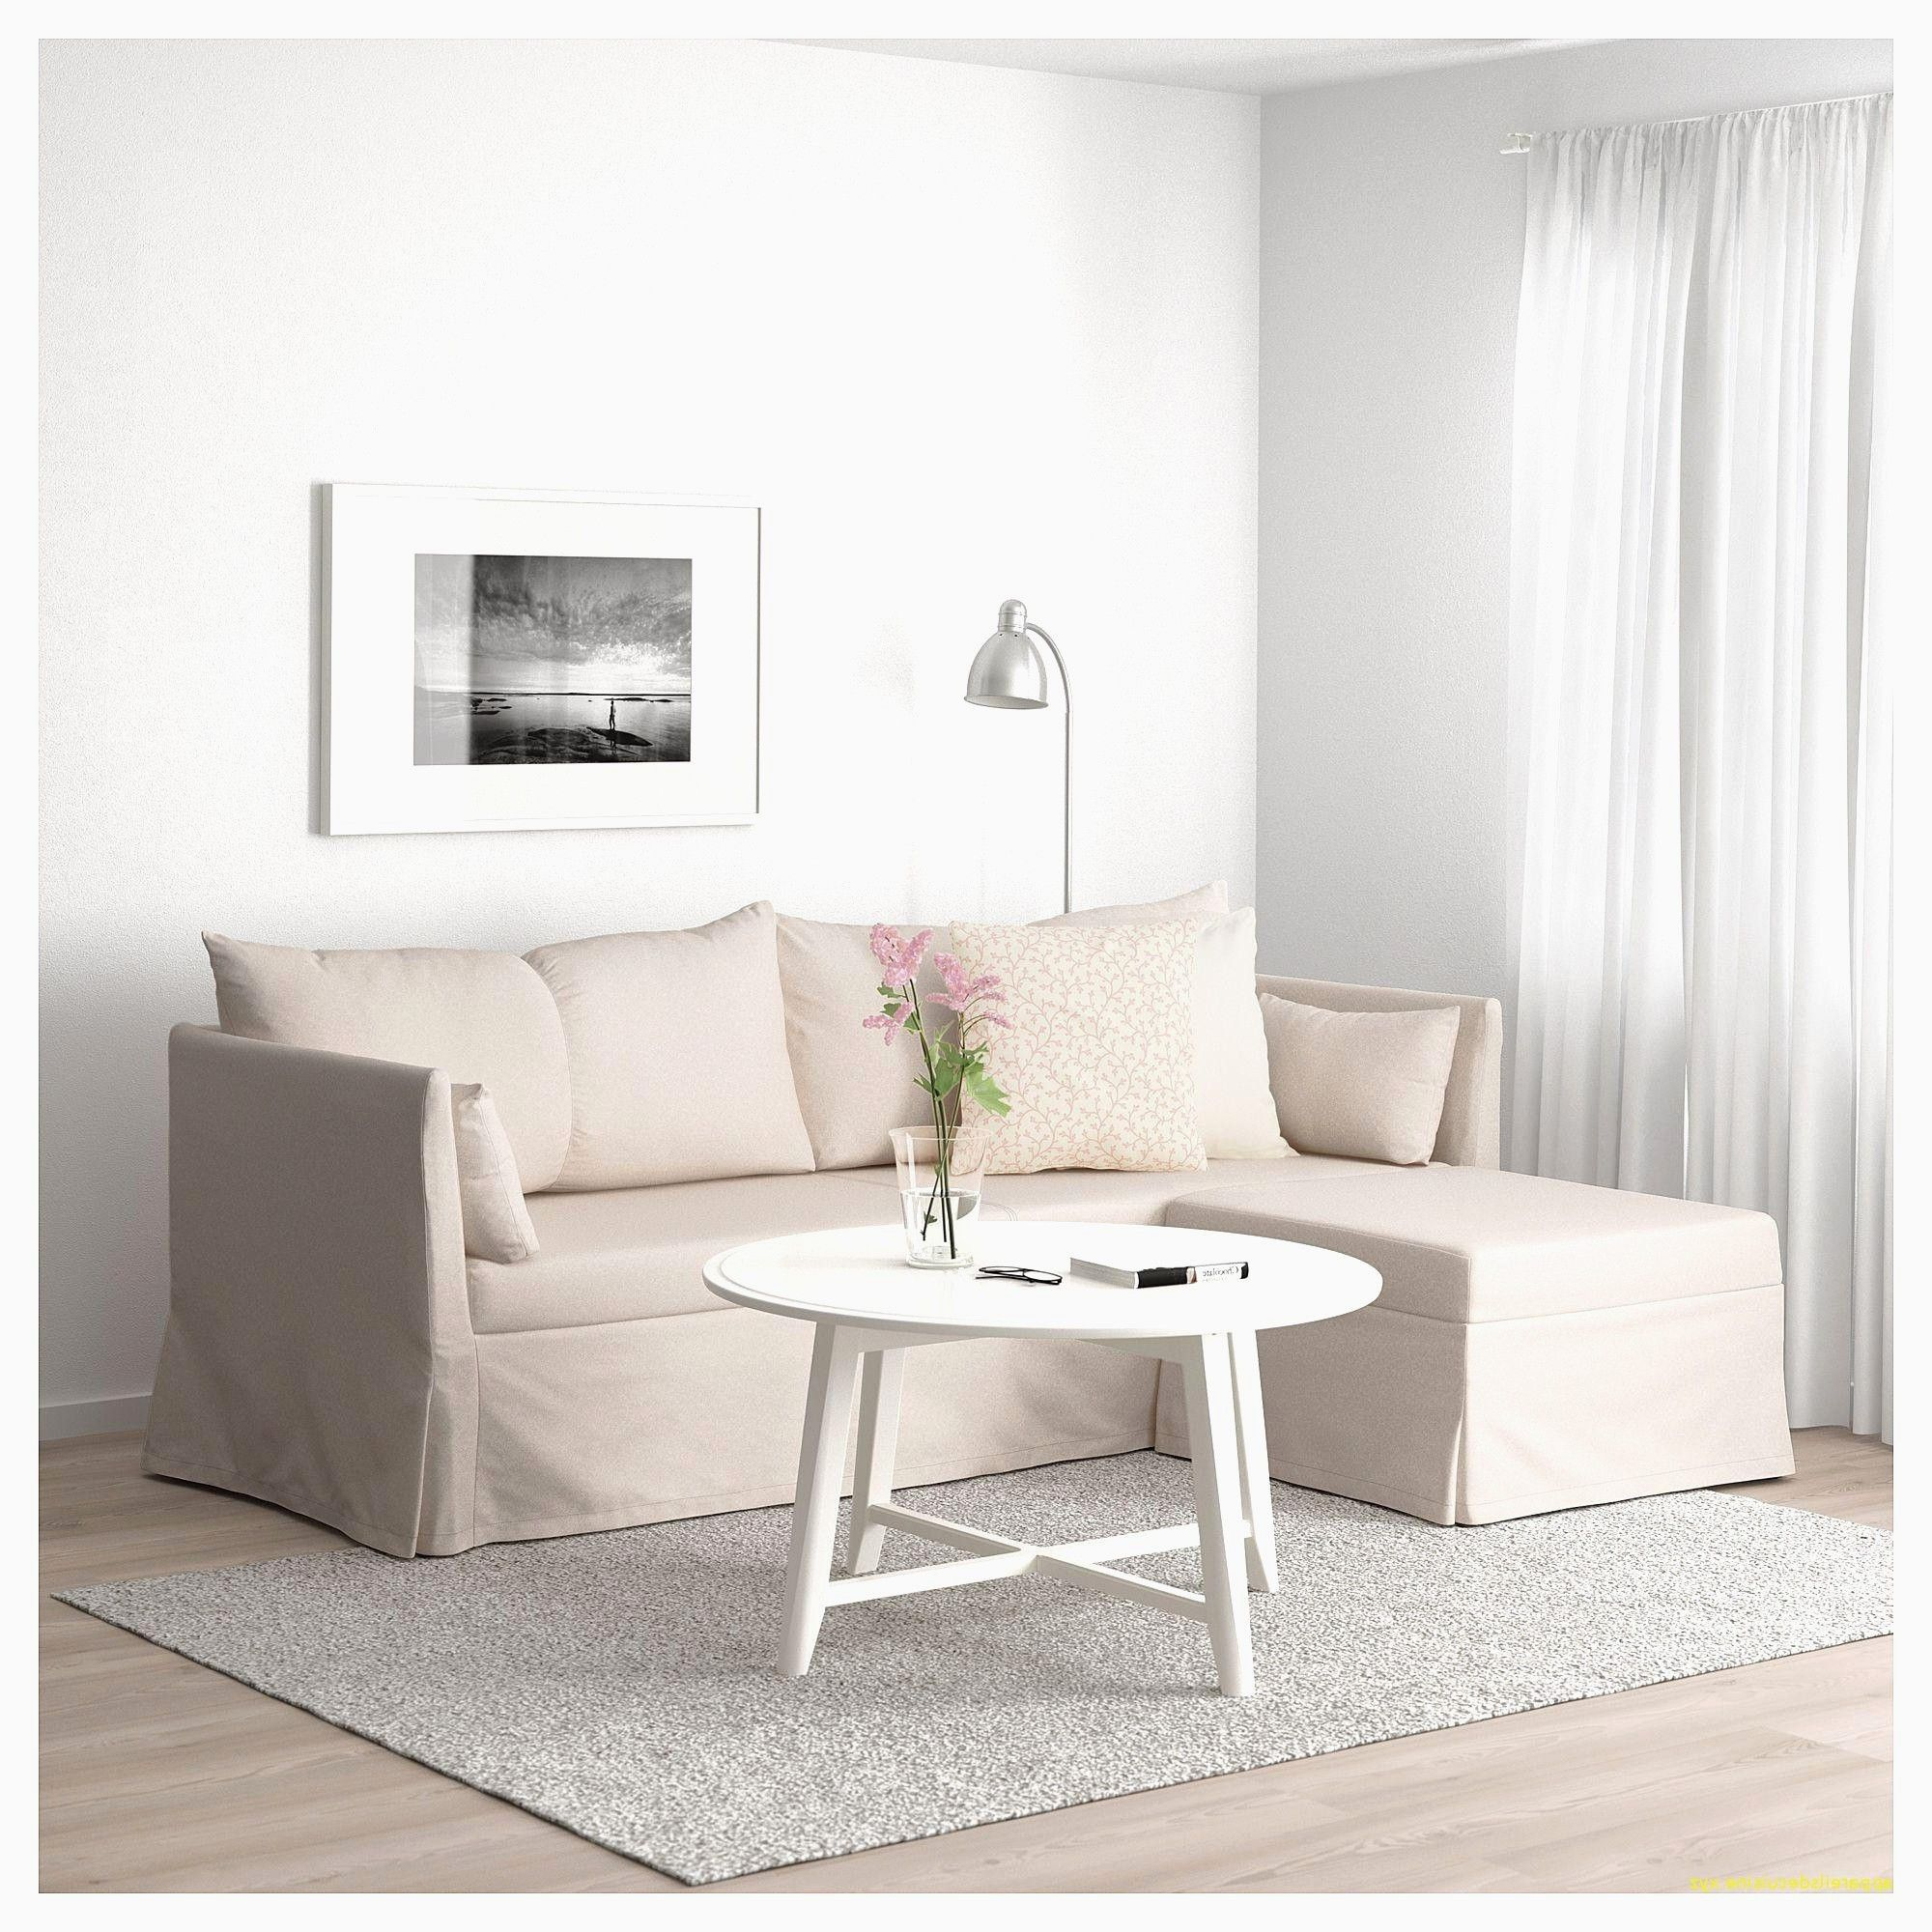 New Maison Scandinave Montpellier Furniture Design Living Room Bedroom Furniture For Sale Living Room Furniture Layout